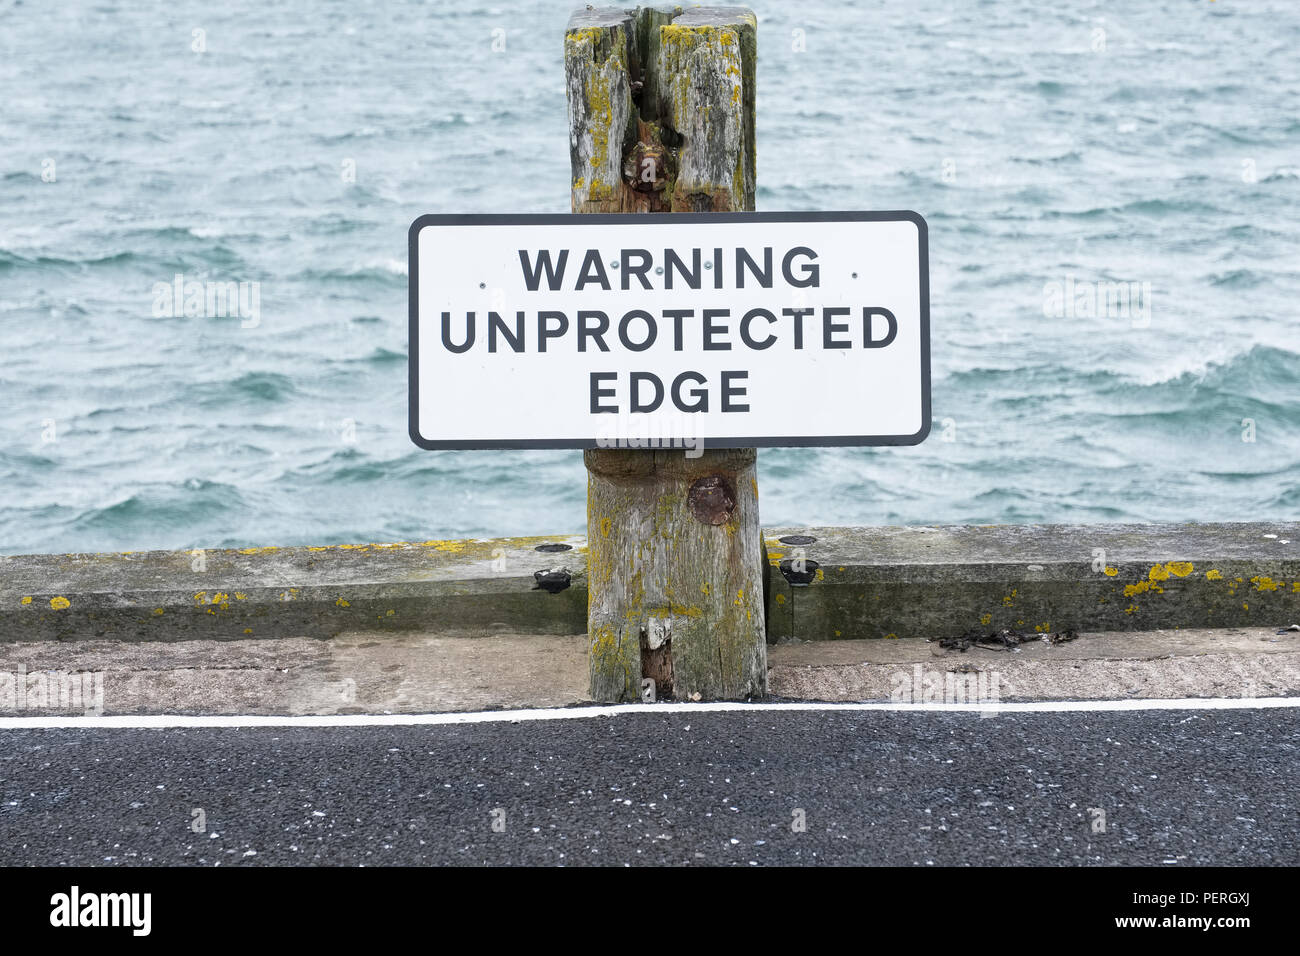 Unprotected edge warning sign at harbour port for car and vehicle safety preventing falling into the sea - Stock Image